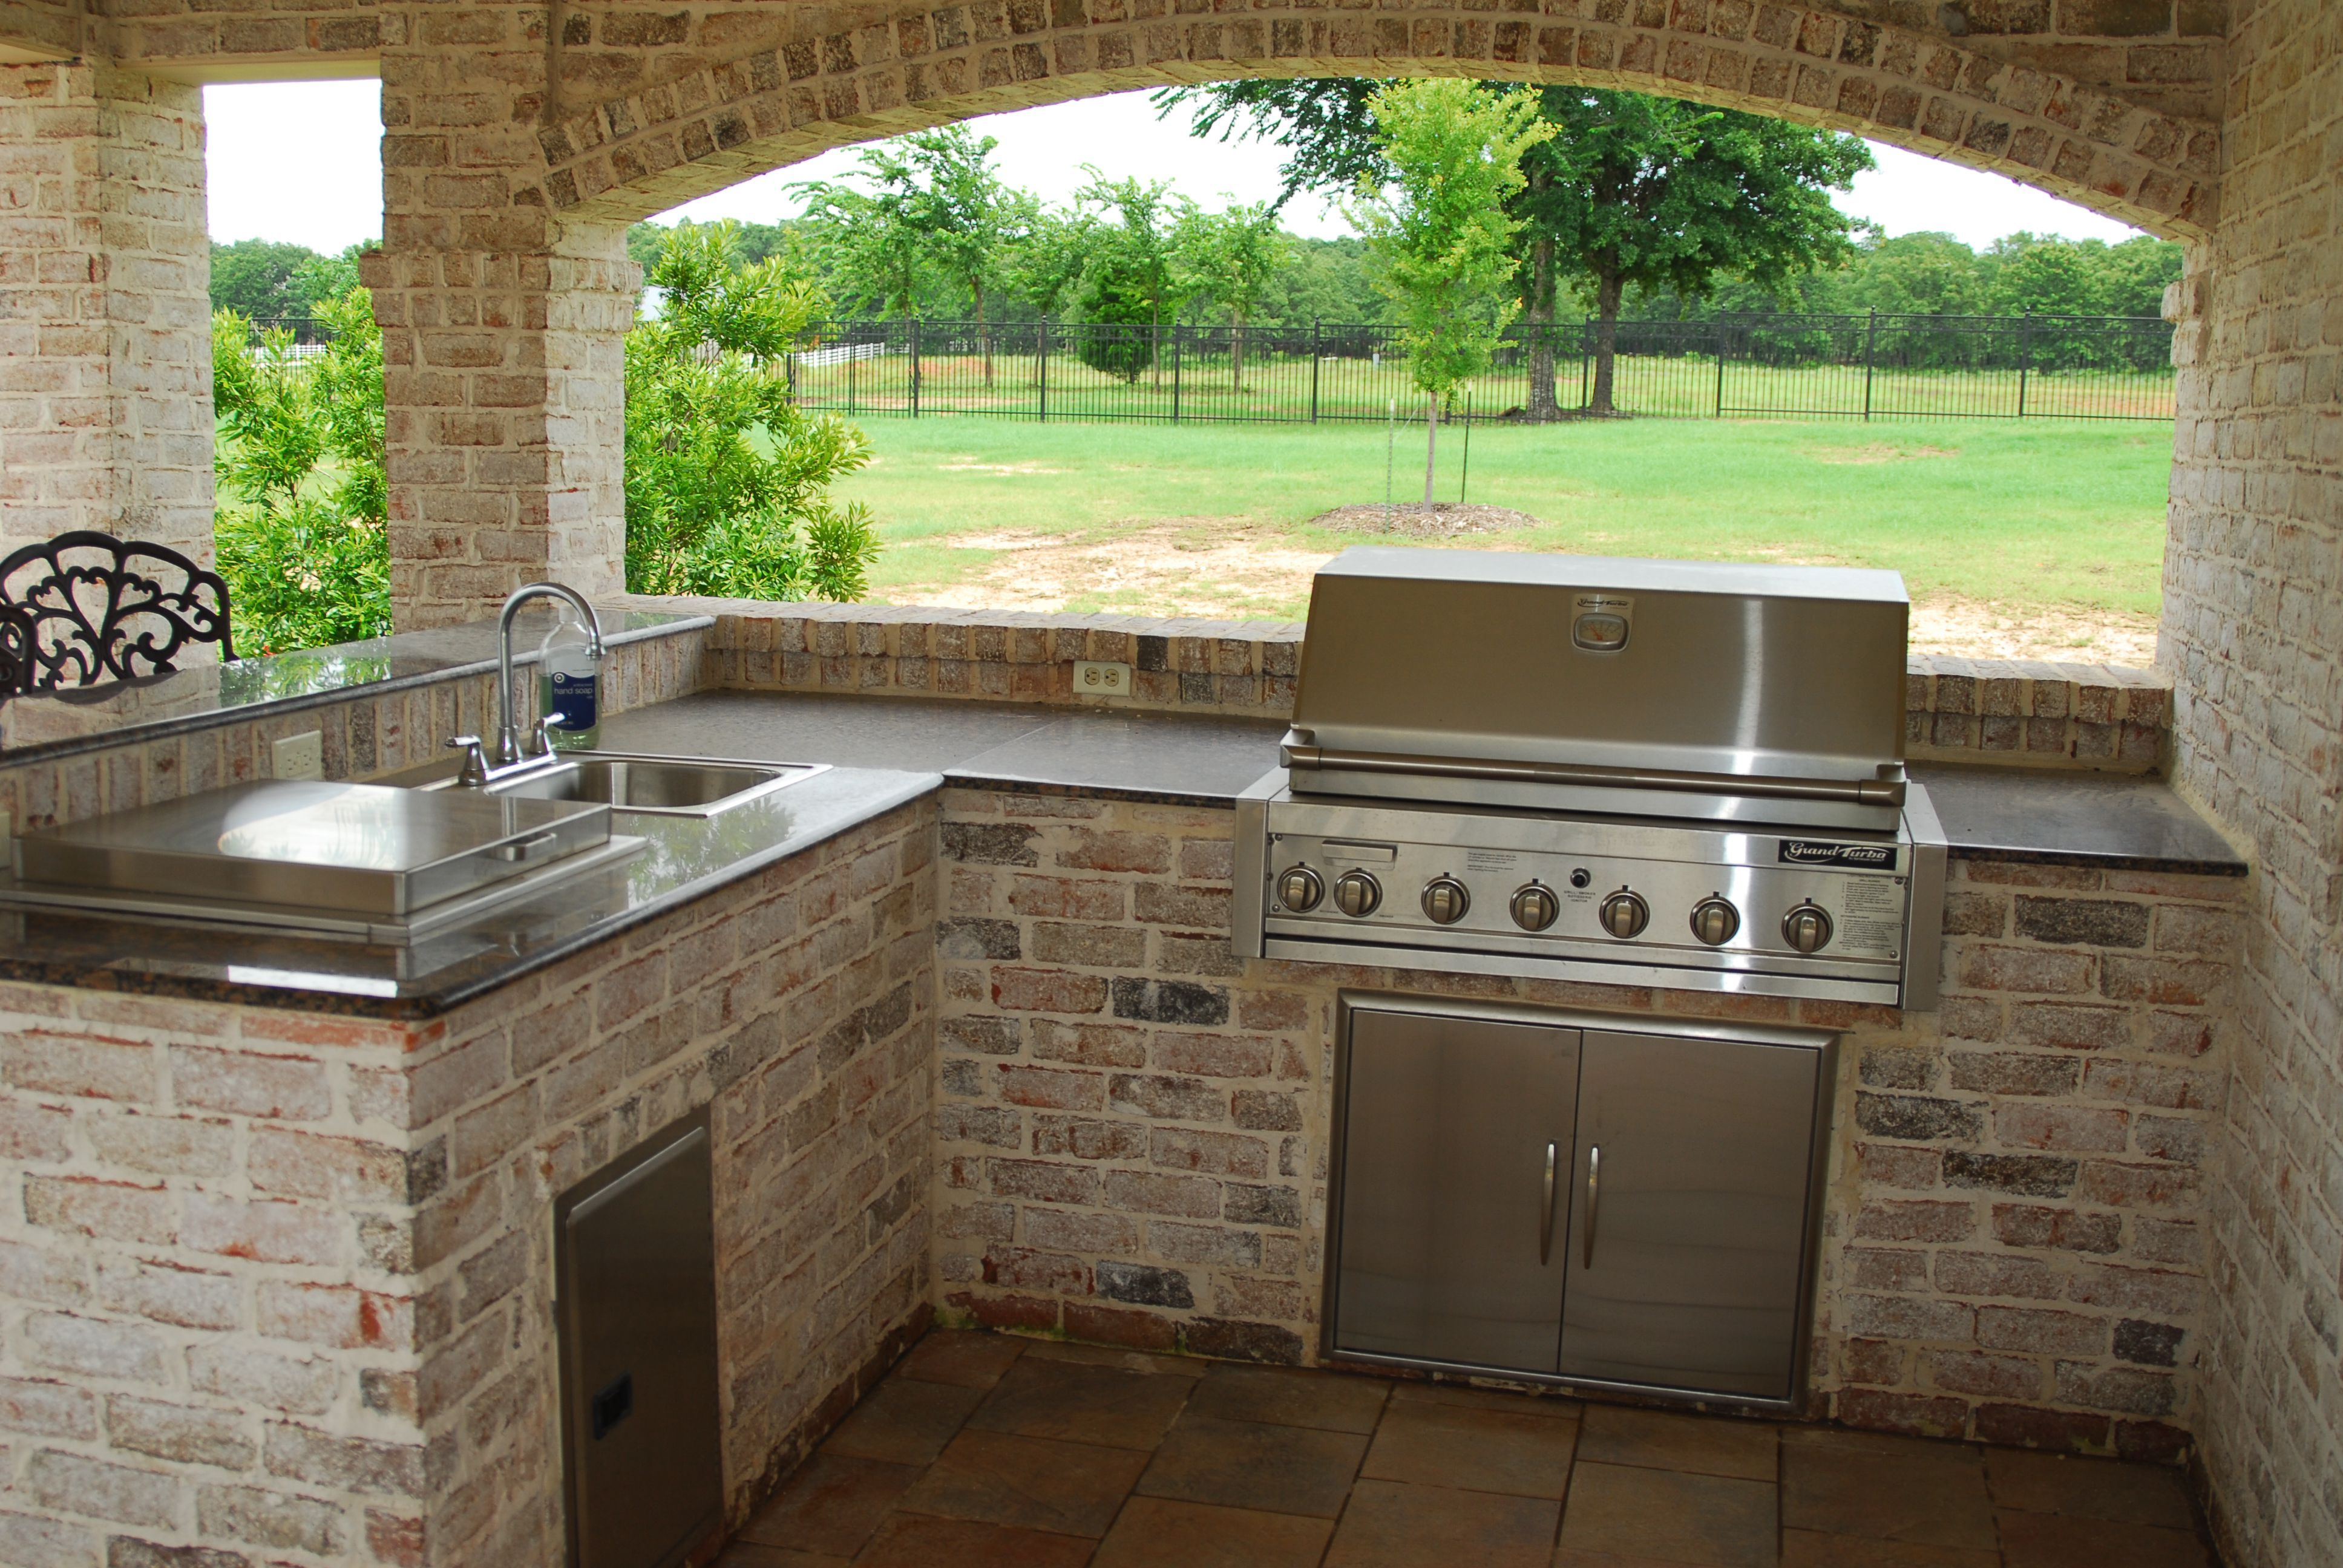 awesome best outdoor kitchen ideas on a budget outdoor kitchen plans diy outdoor kitchen on outdoor kitchen ideas on a budget id=60033